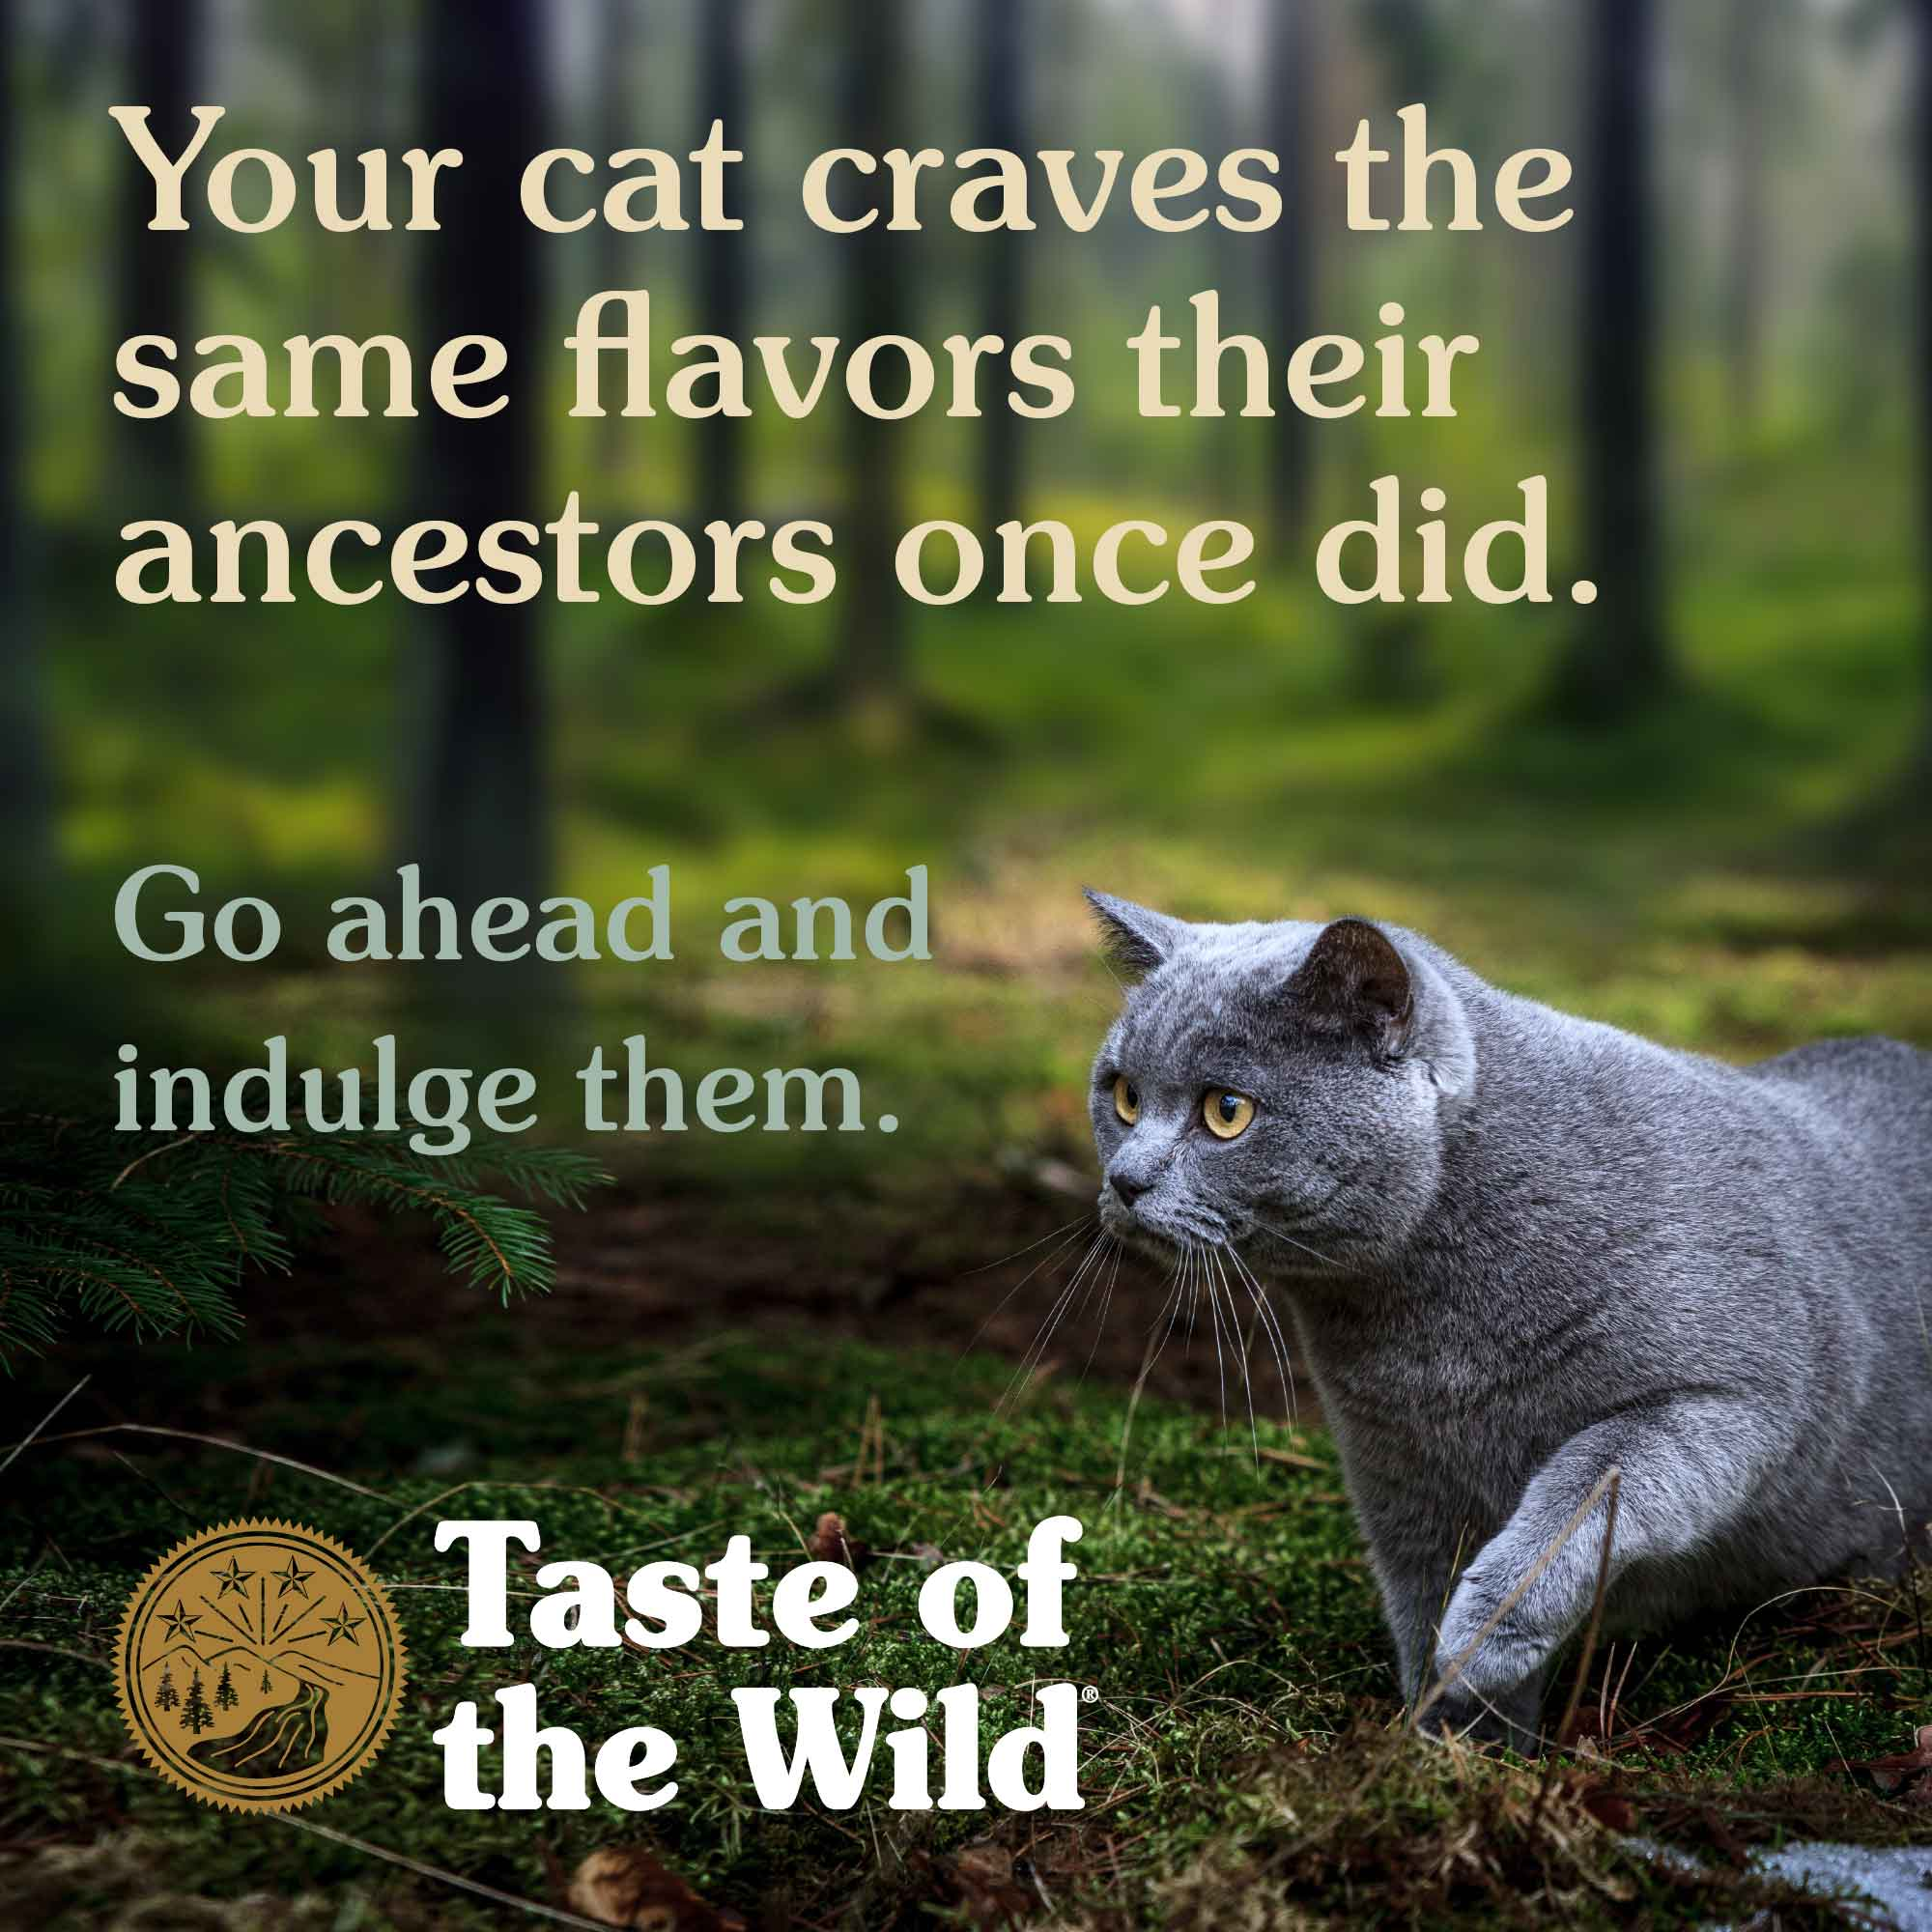 Your cat craves the same flavors their ancestors once did.